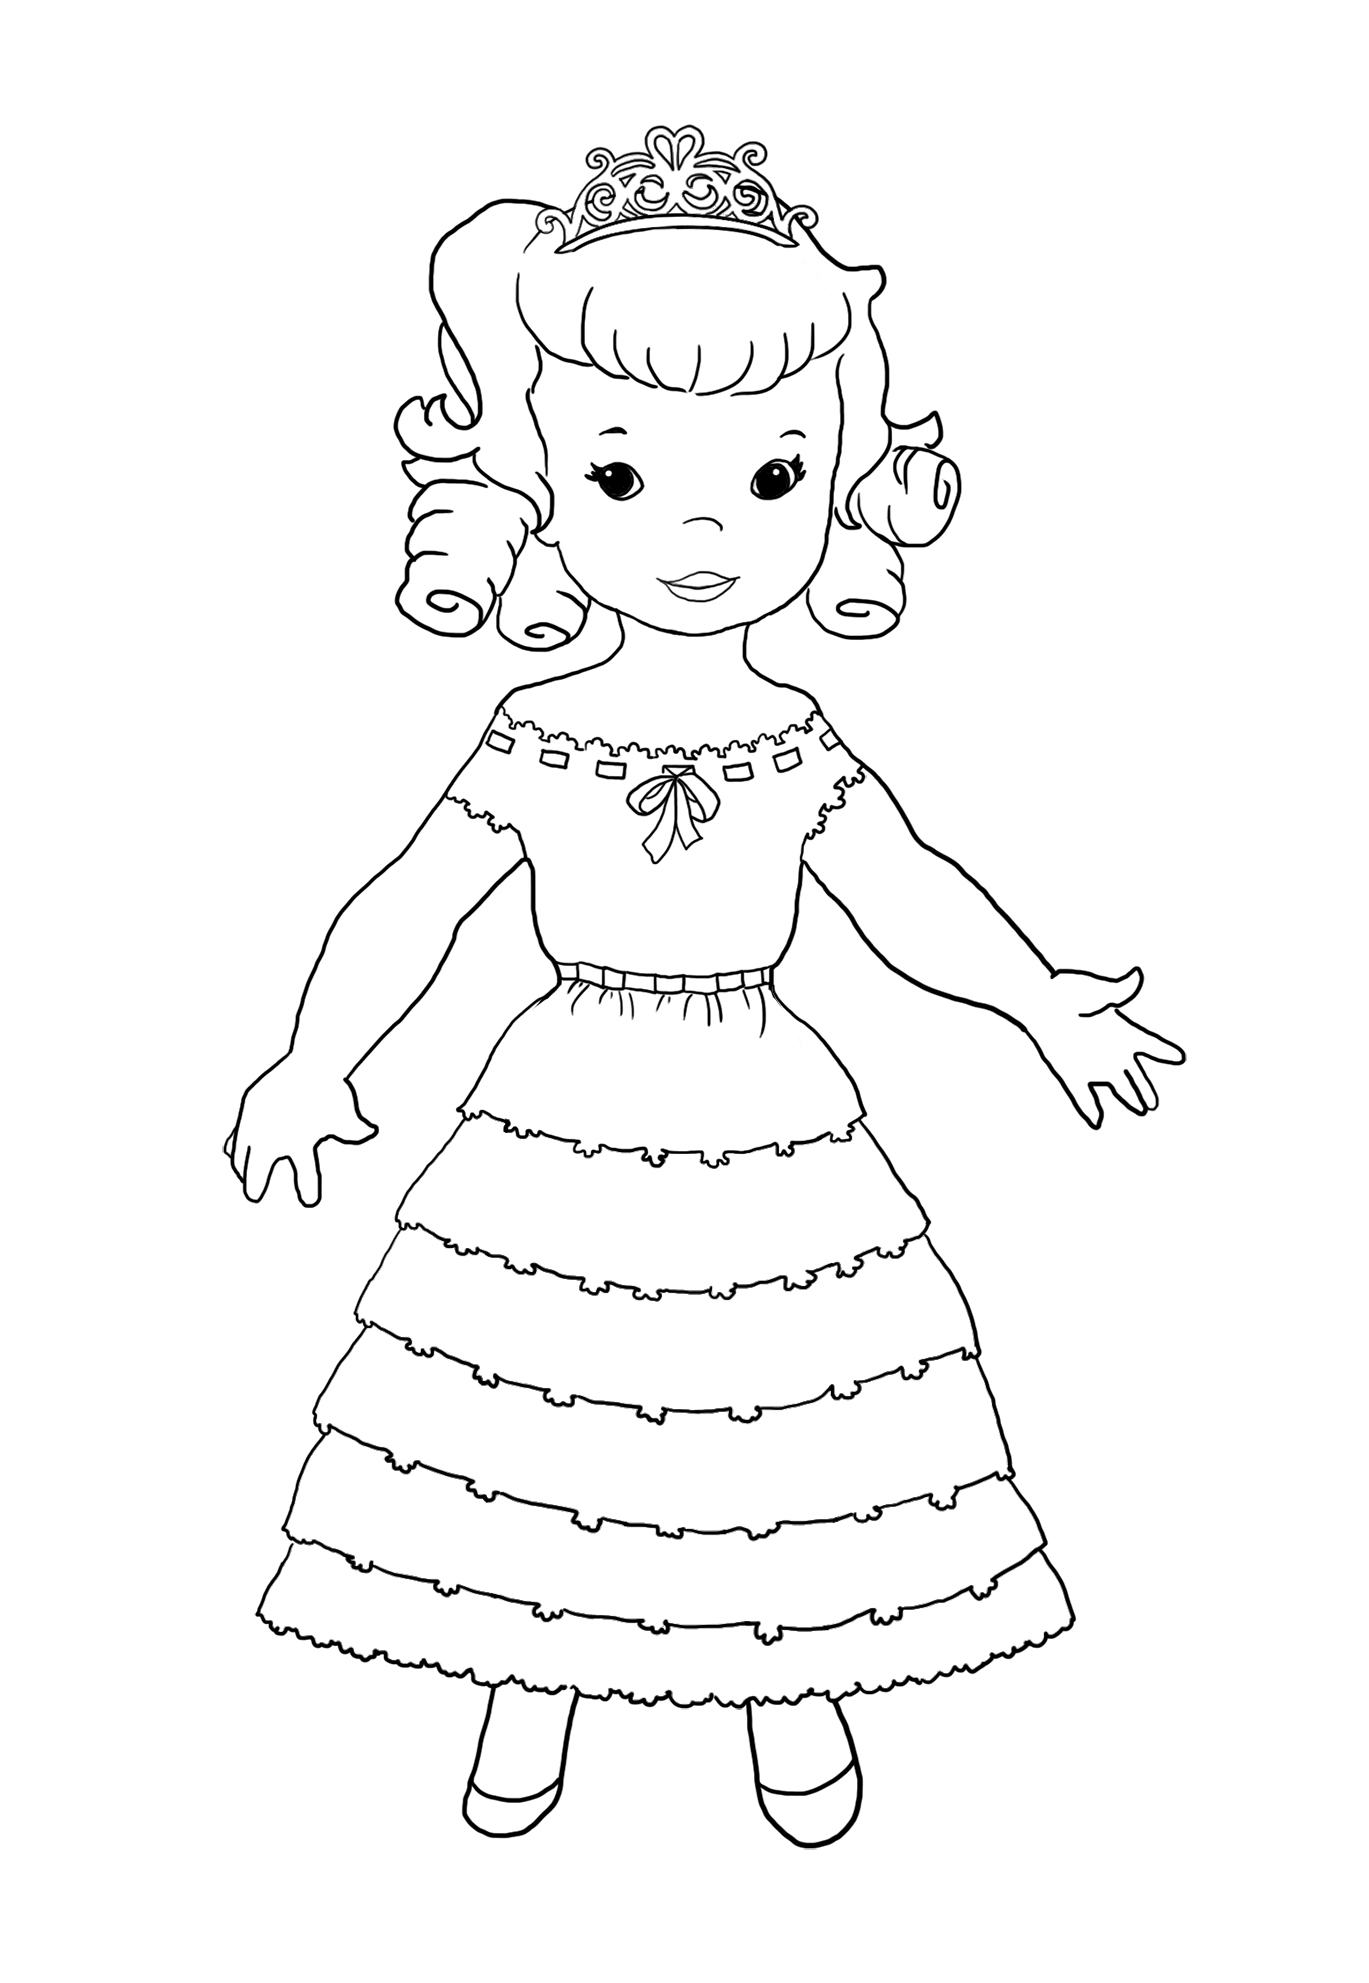 cute princess coloring pages cute princess disney halloween coloring pages printable princess cute pages coloring